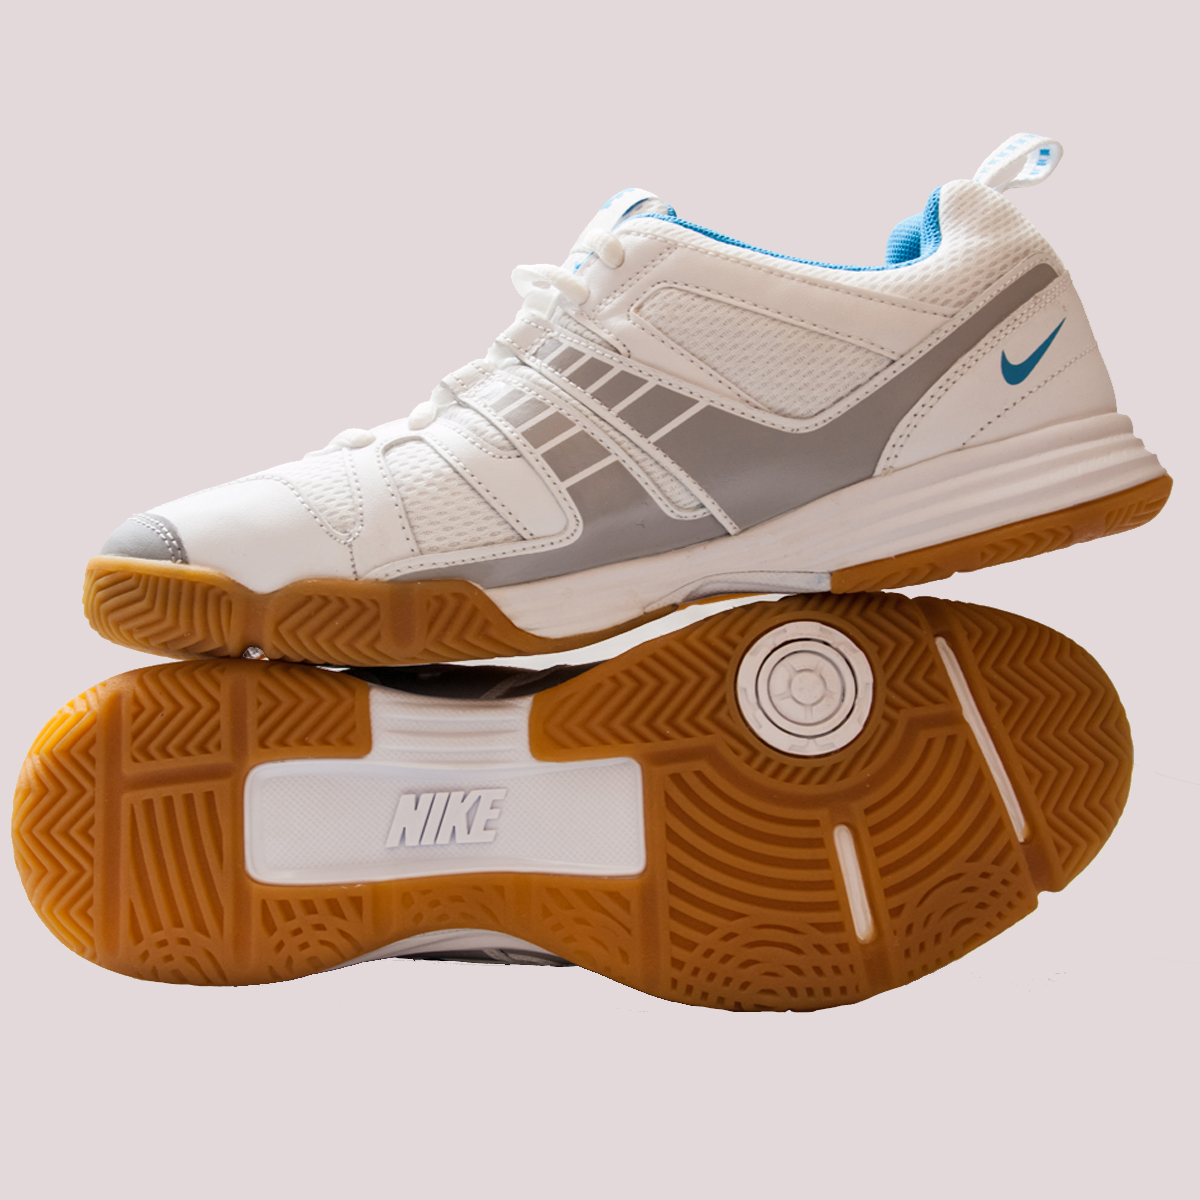 Nike Badminton Shoes Price And Nike Badminton Shoes